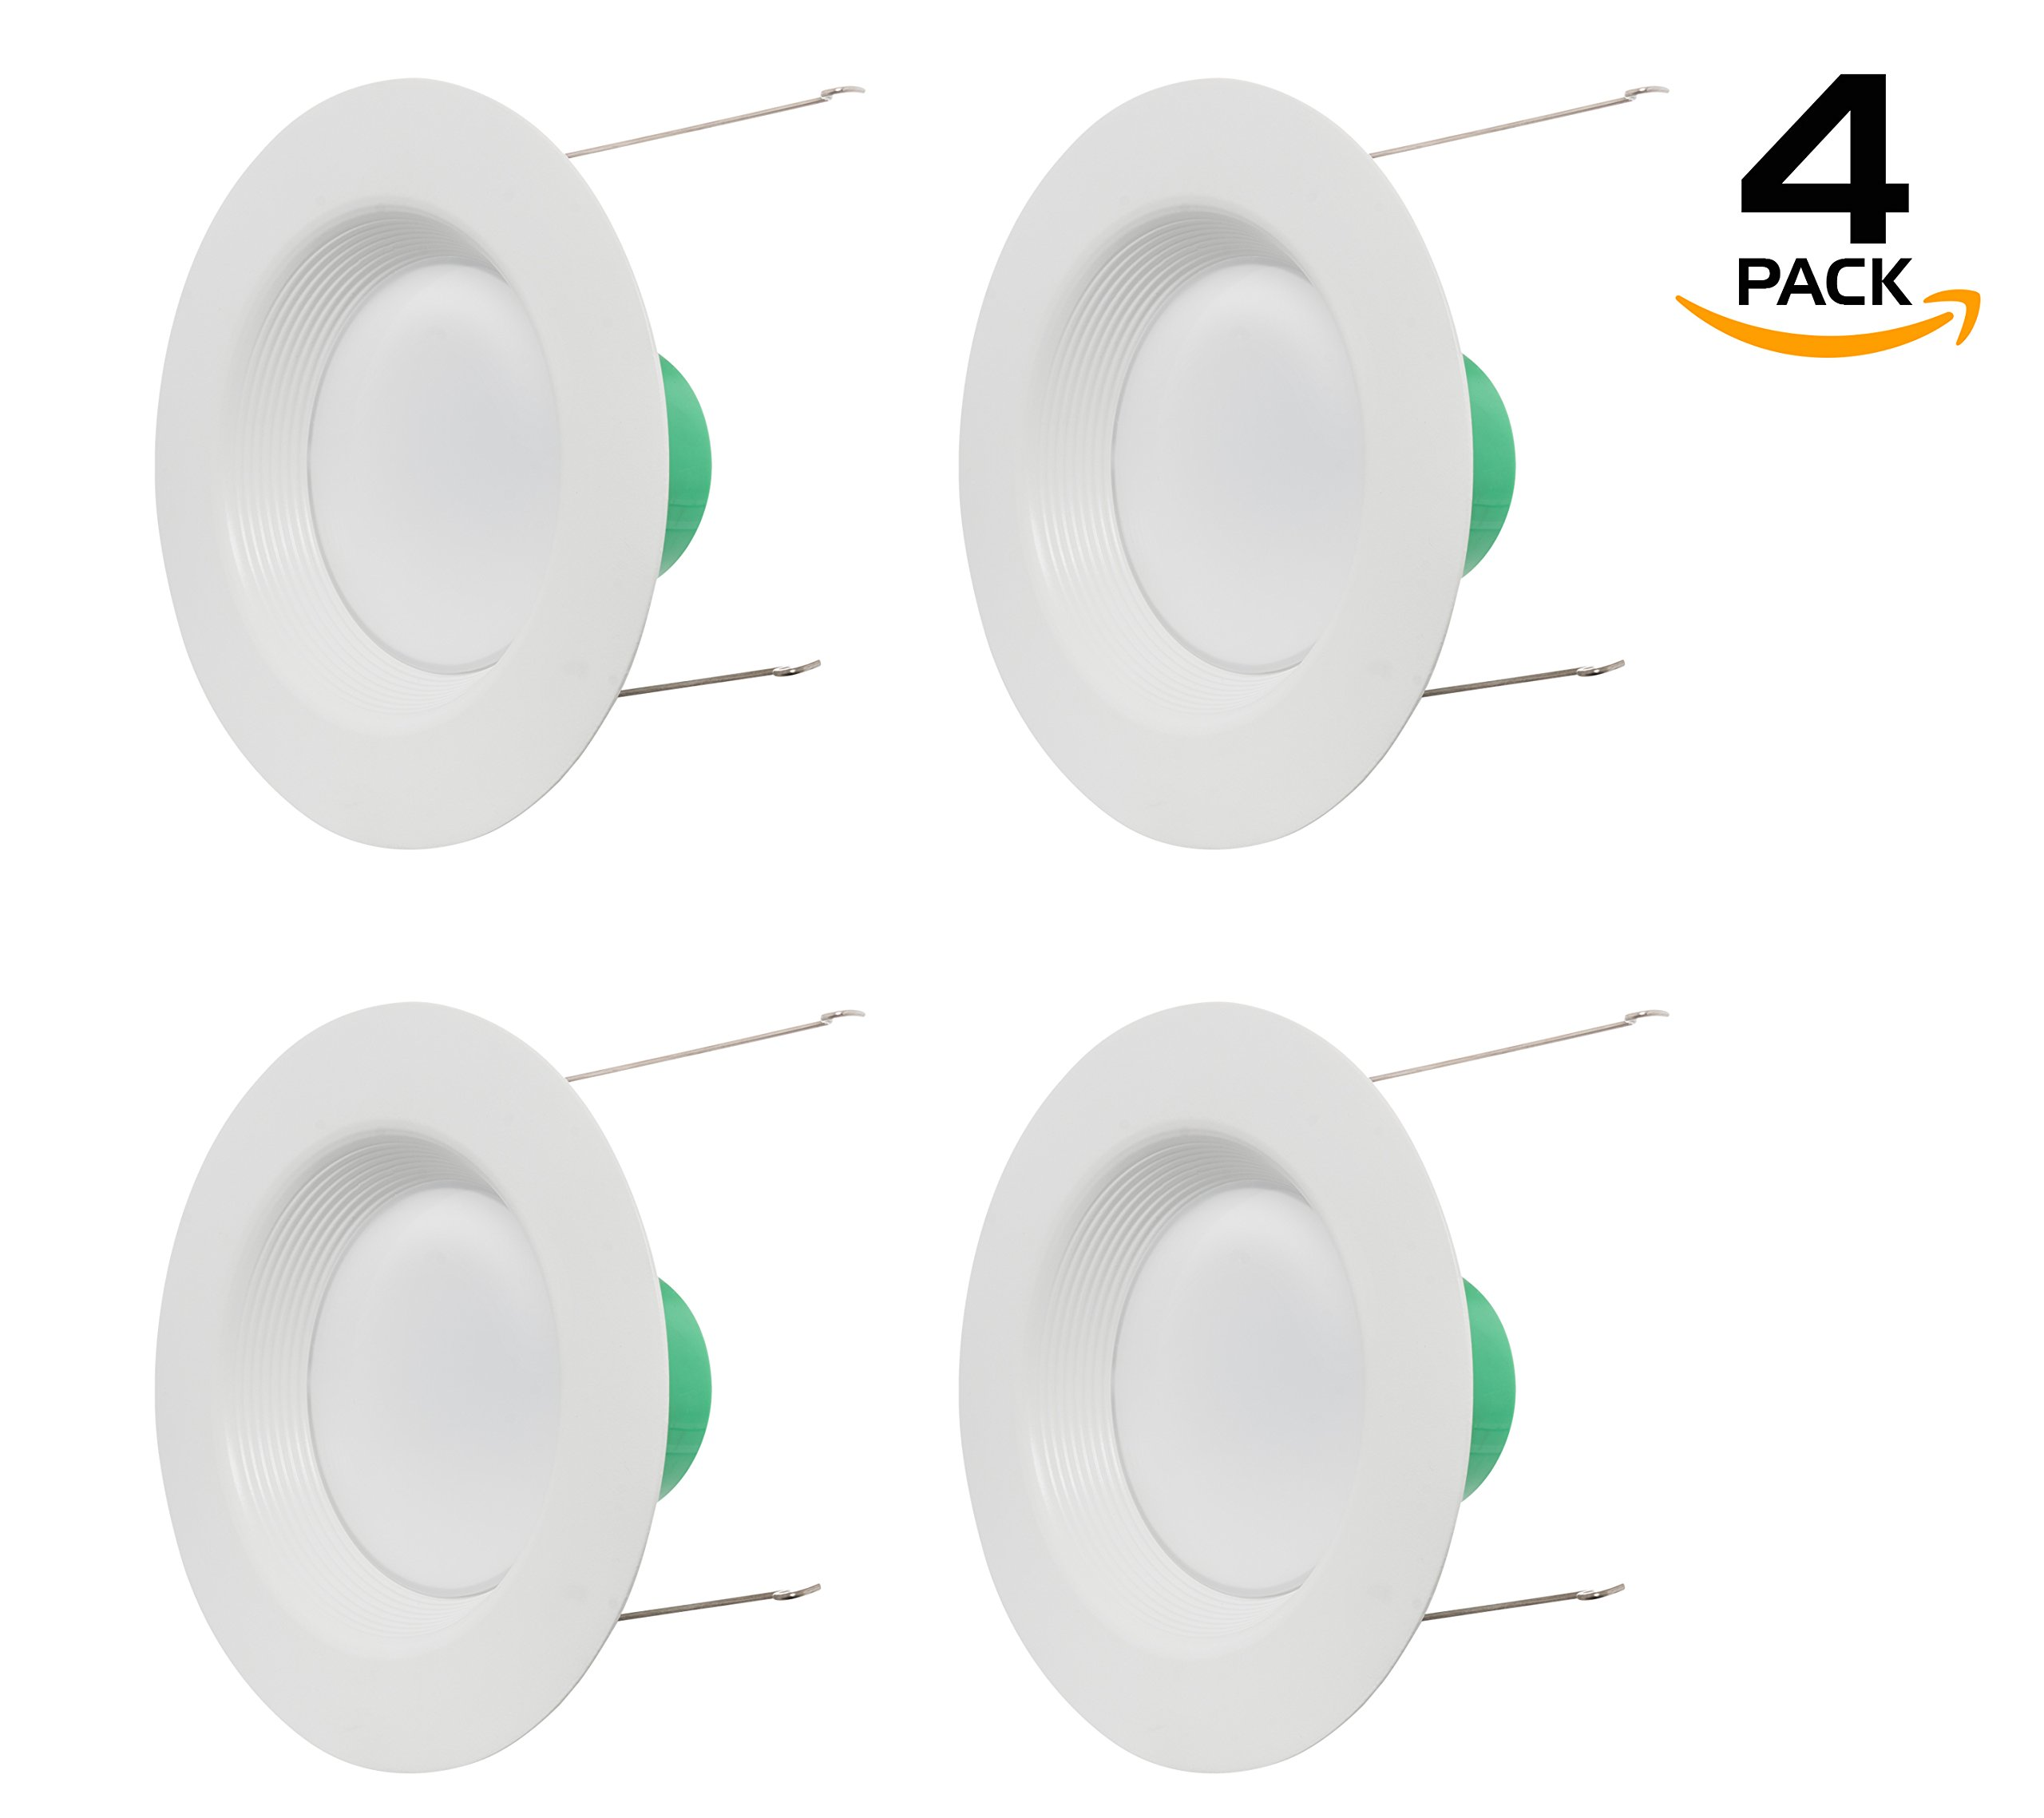 Westgate Lighting 18W 6 Inch LED Retrofit Downlight With Integrated Baffle Trim - Dimmable LED Recessed Light Fixture Kit For Home, Kitchen,Office - 120V High Lumen (4 Pack, 2700k Warm White)